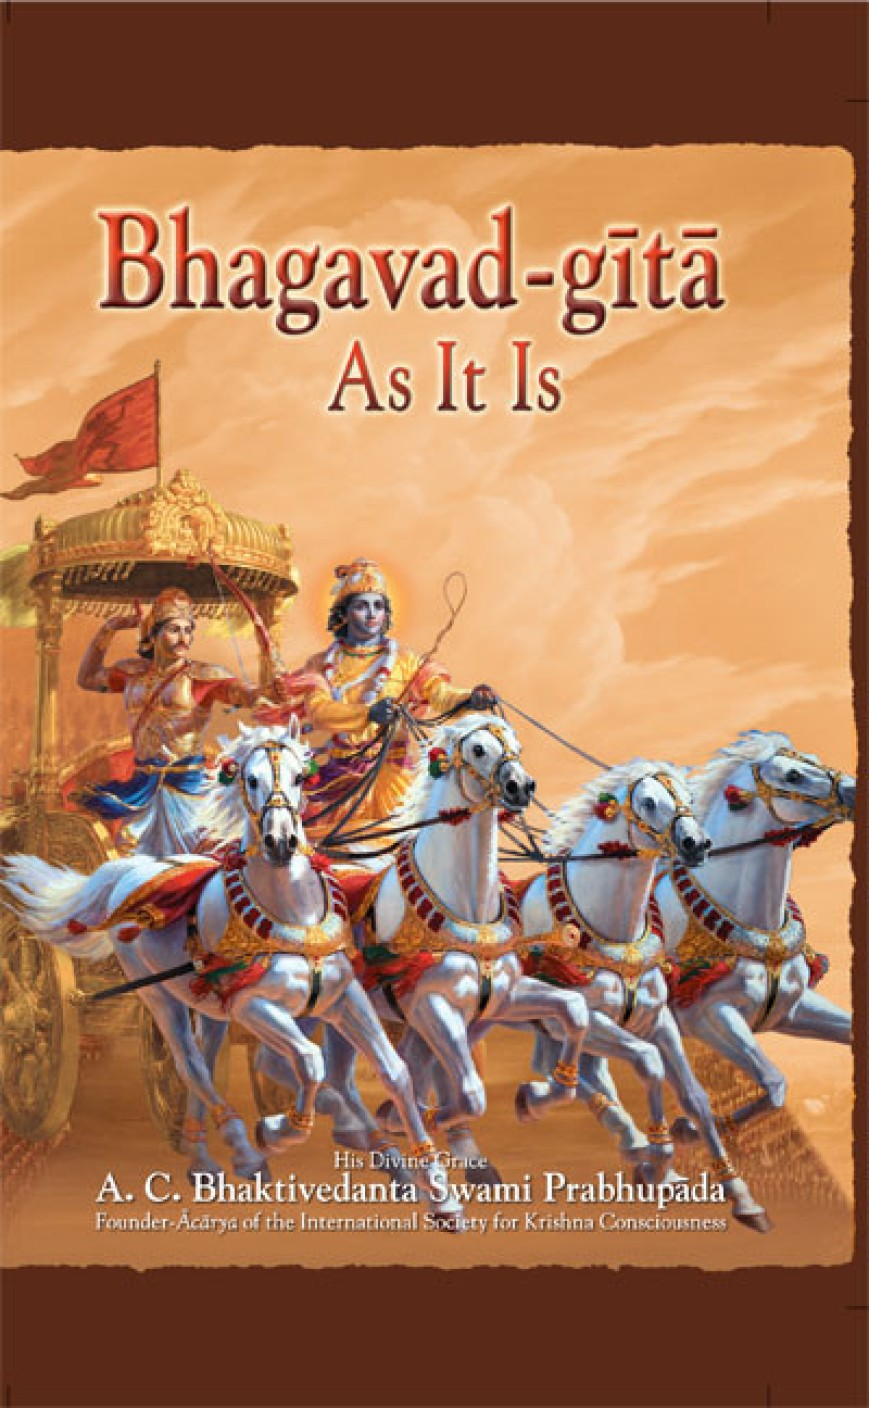 bhagavad gita the choice of arjuna essay In a later section of notes on the bhagavad-gita, mr judge does hold forth one kind of encouragement, for he says that reliance and pressure upon our inner nature, in moments of darkness, are sure to be answered by the voice of krishna, the inner guide and so it was with arjuna.